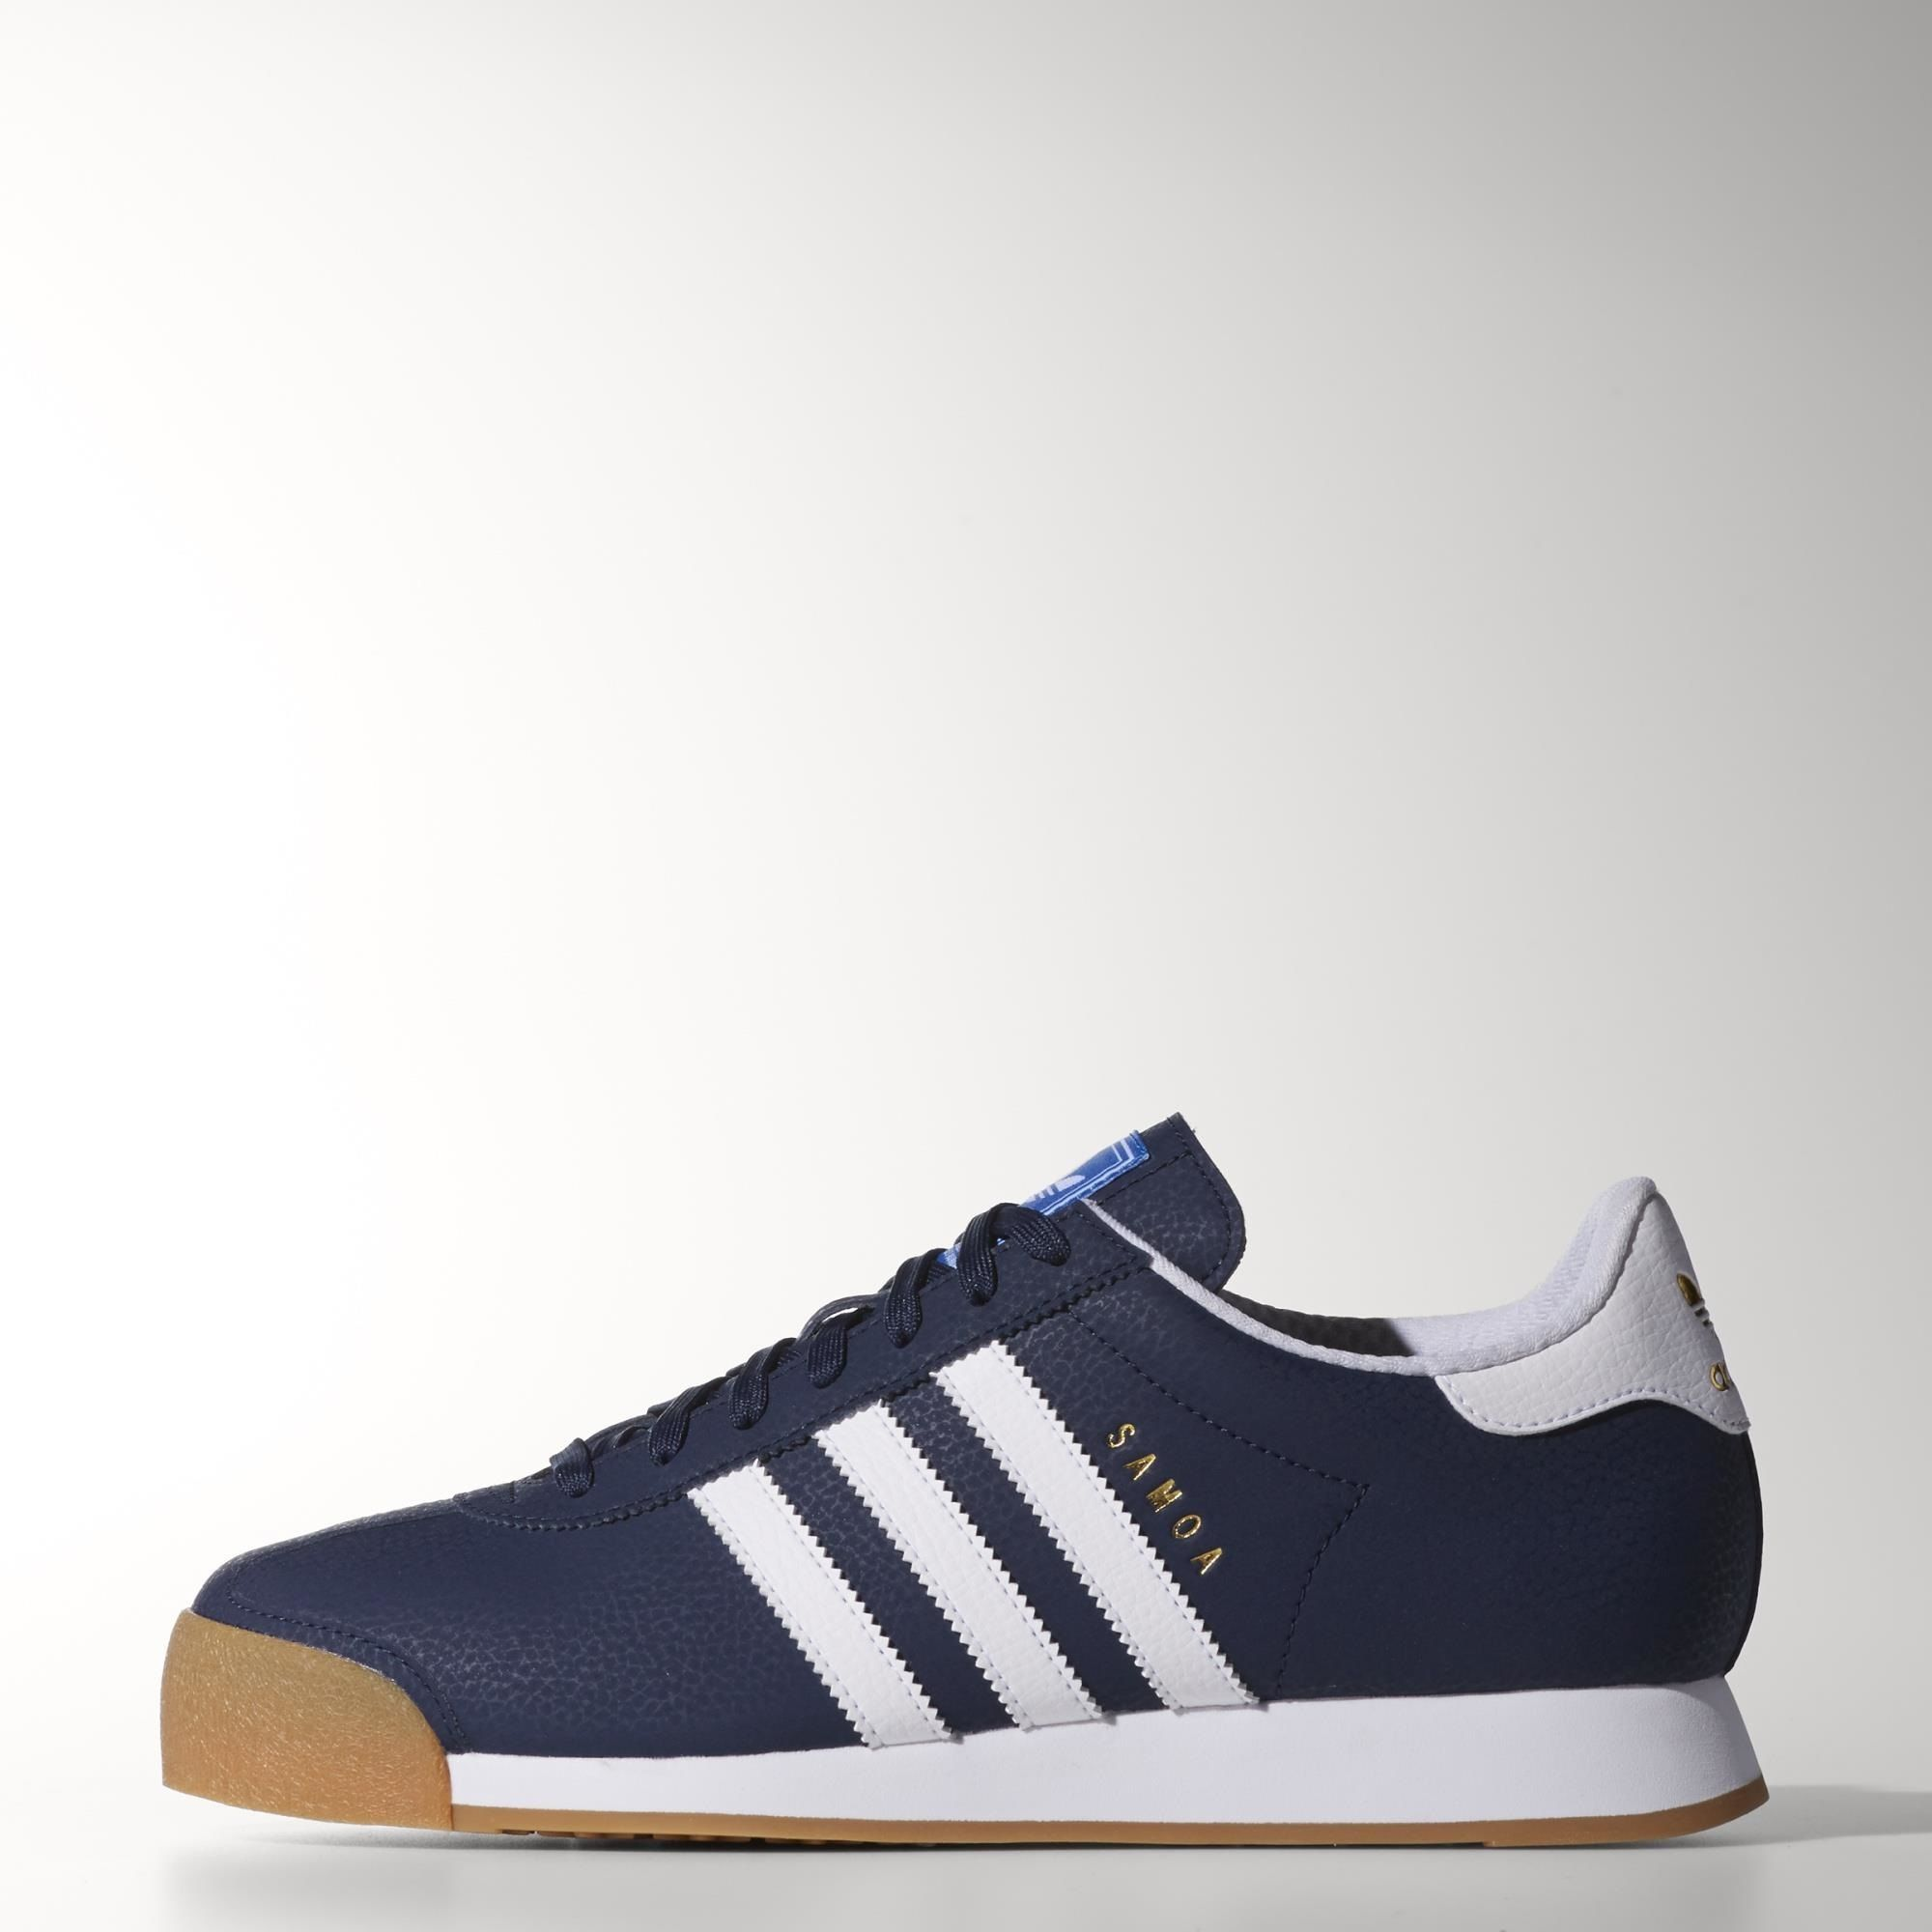 Adidas 'Country OG' sneakers Unisex Shoes adidas navy joggers Online Shop